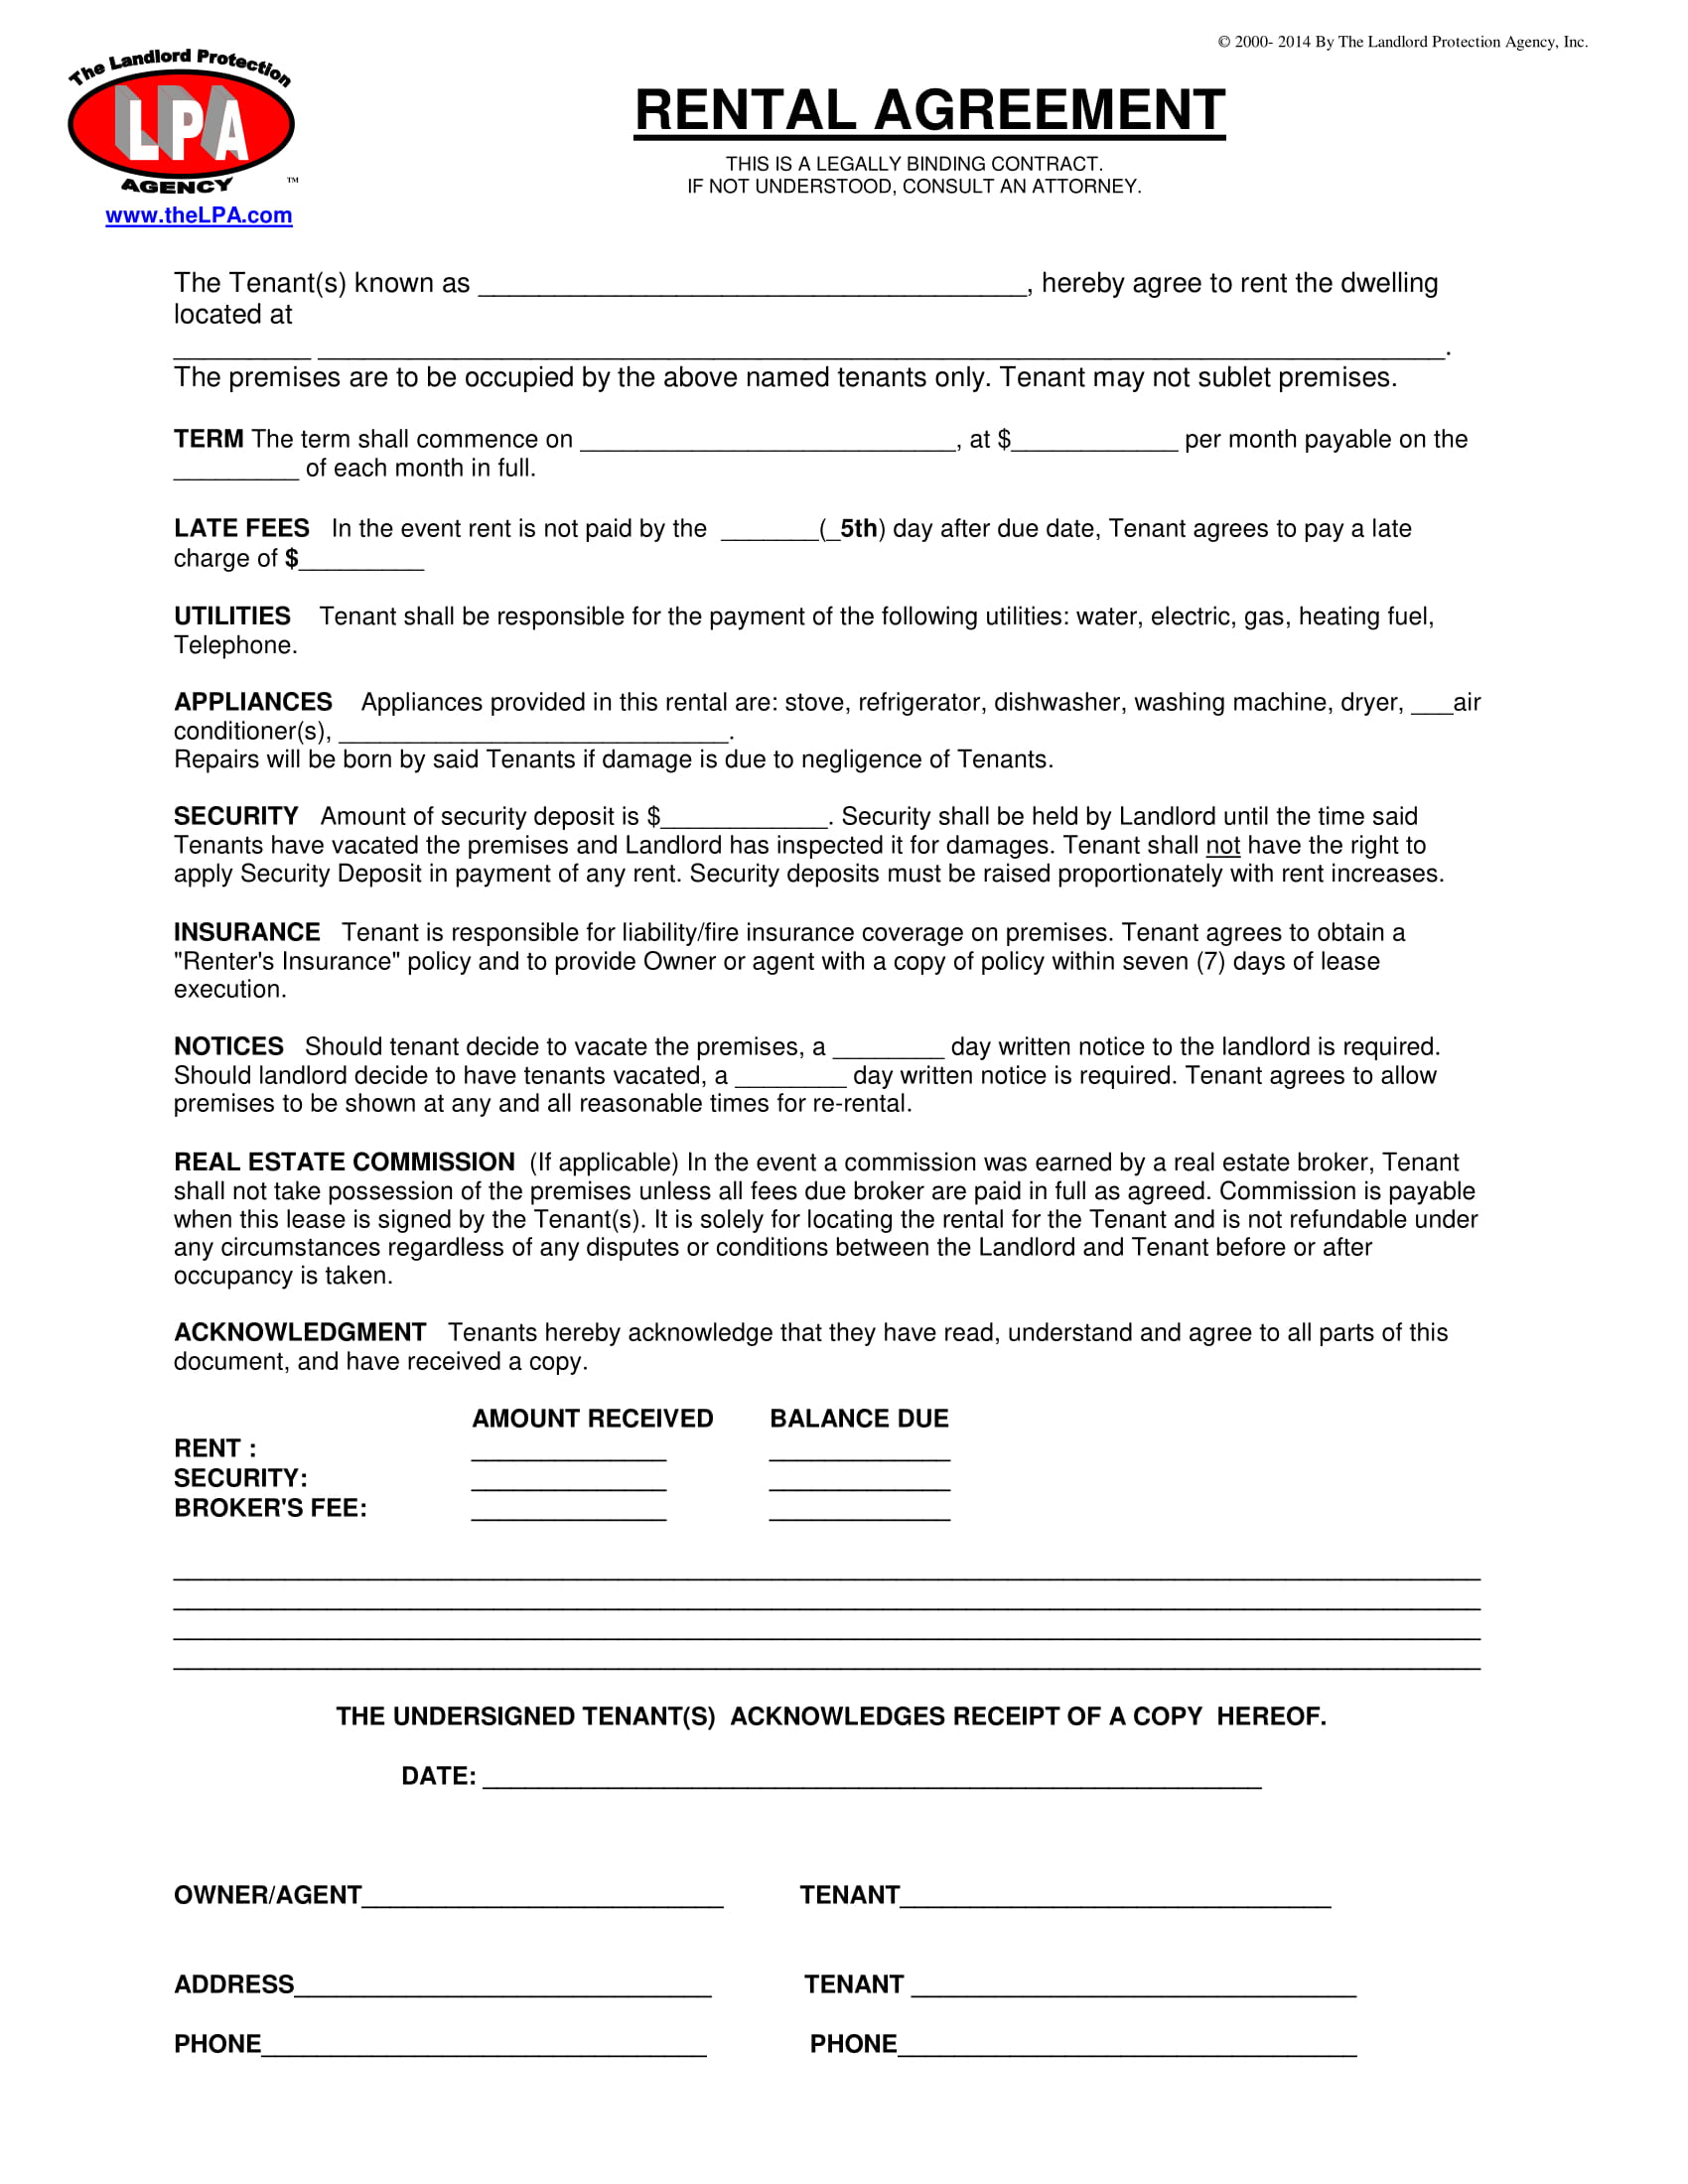 9  business agreement letter examples